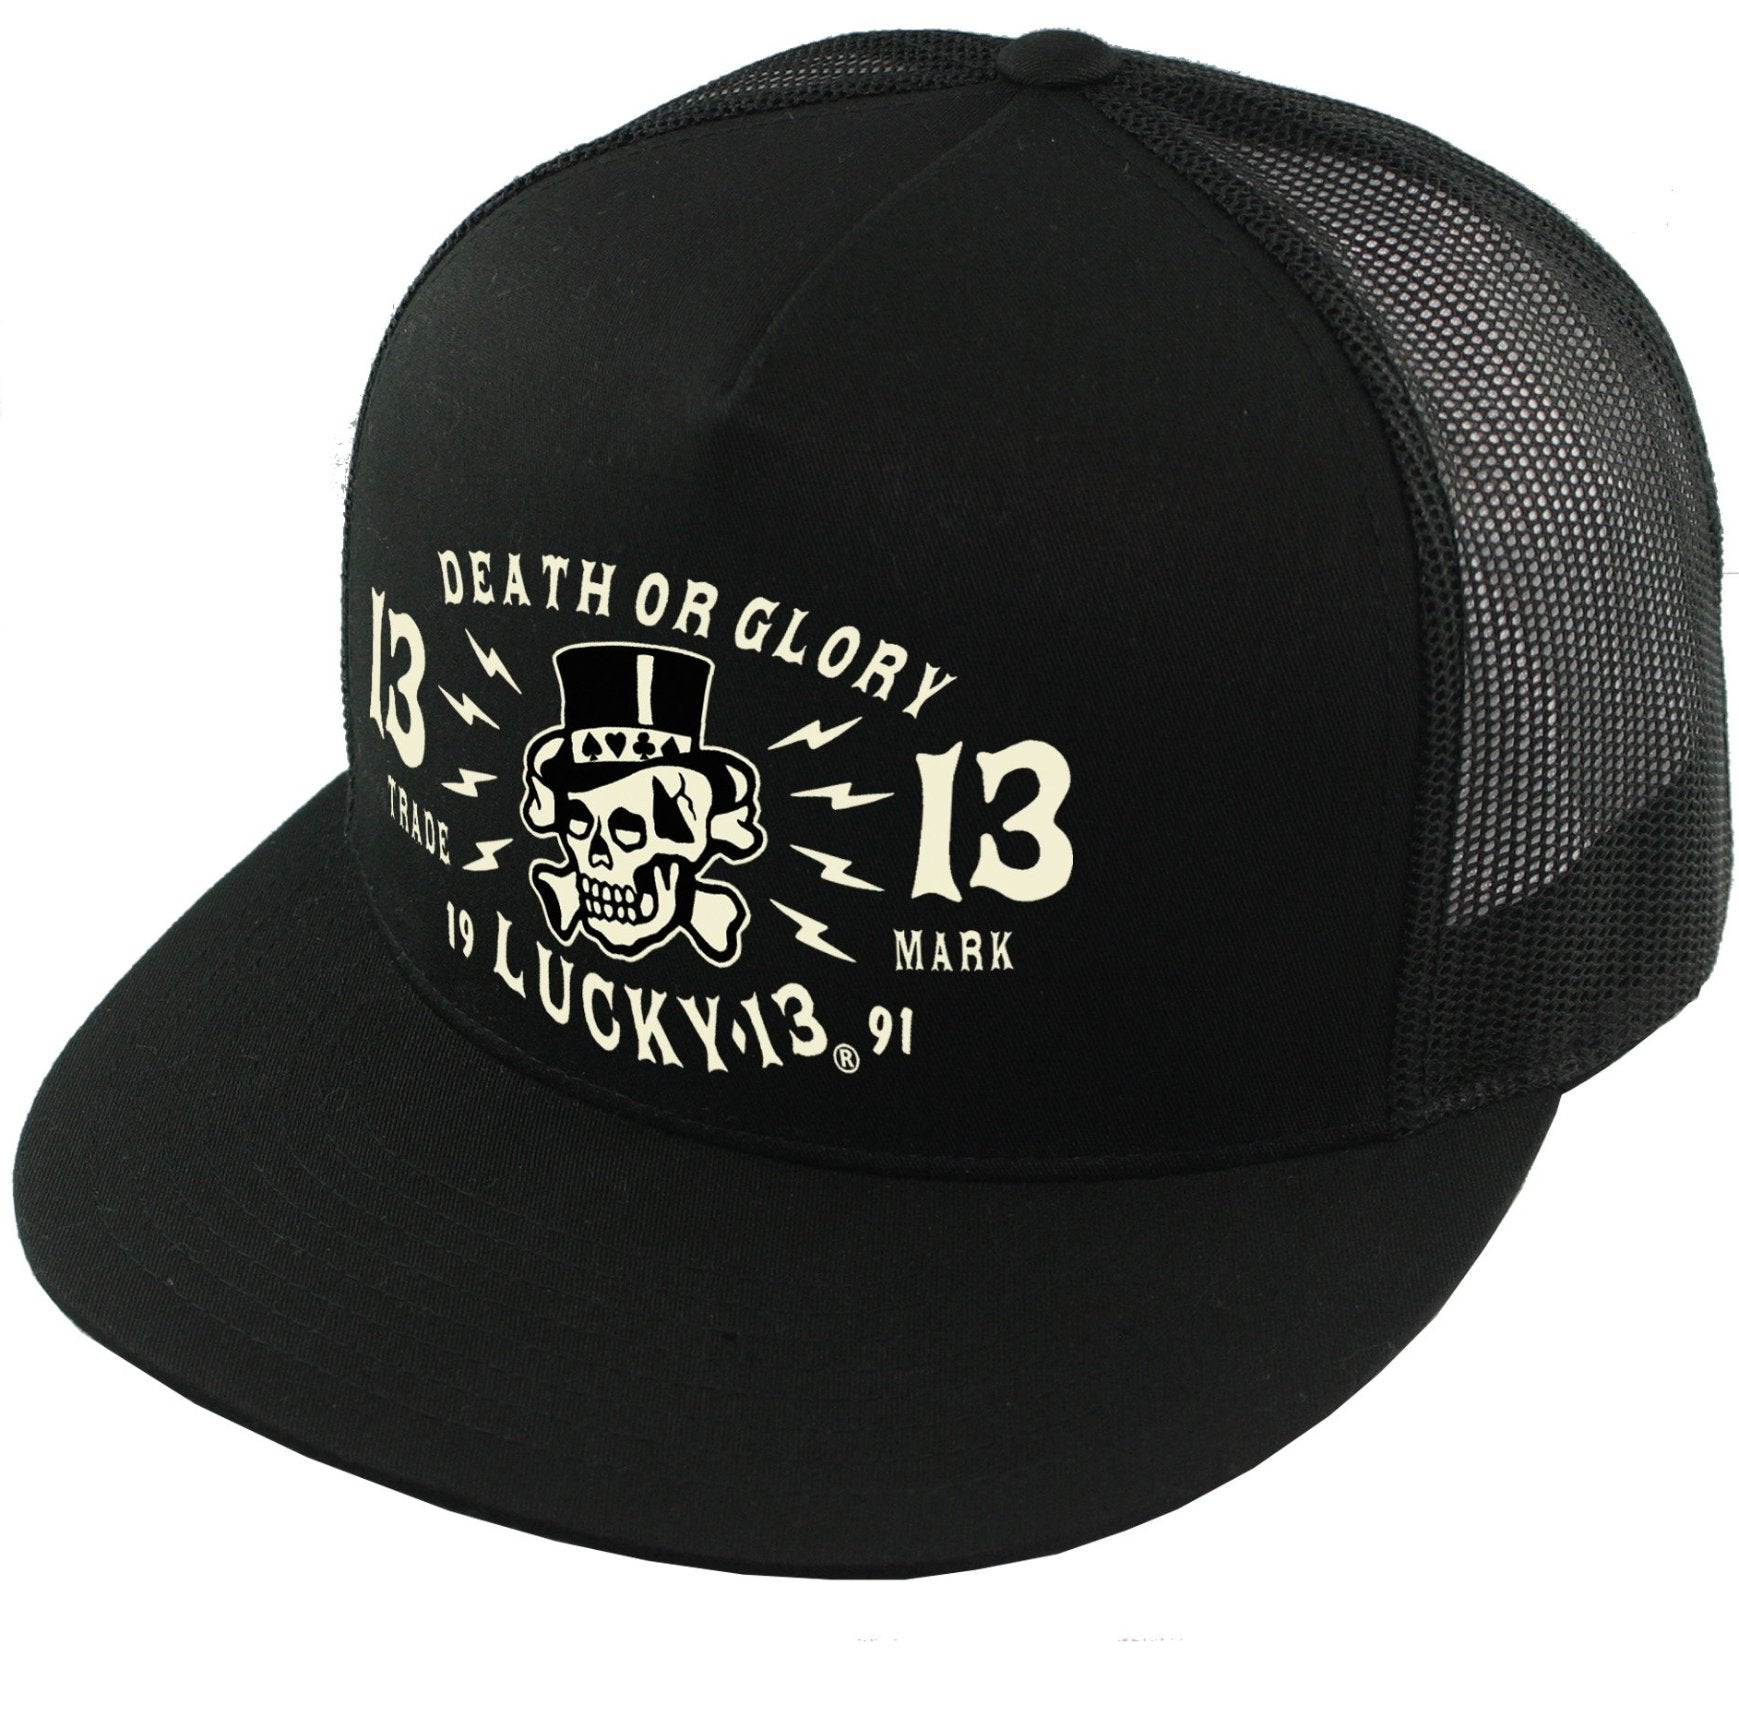 The DEATH OR GLORY Trucker Cap